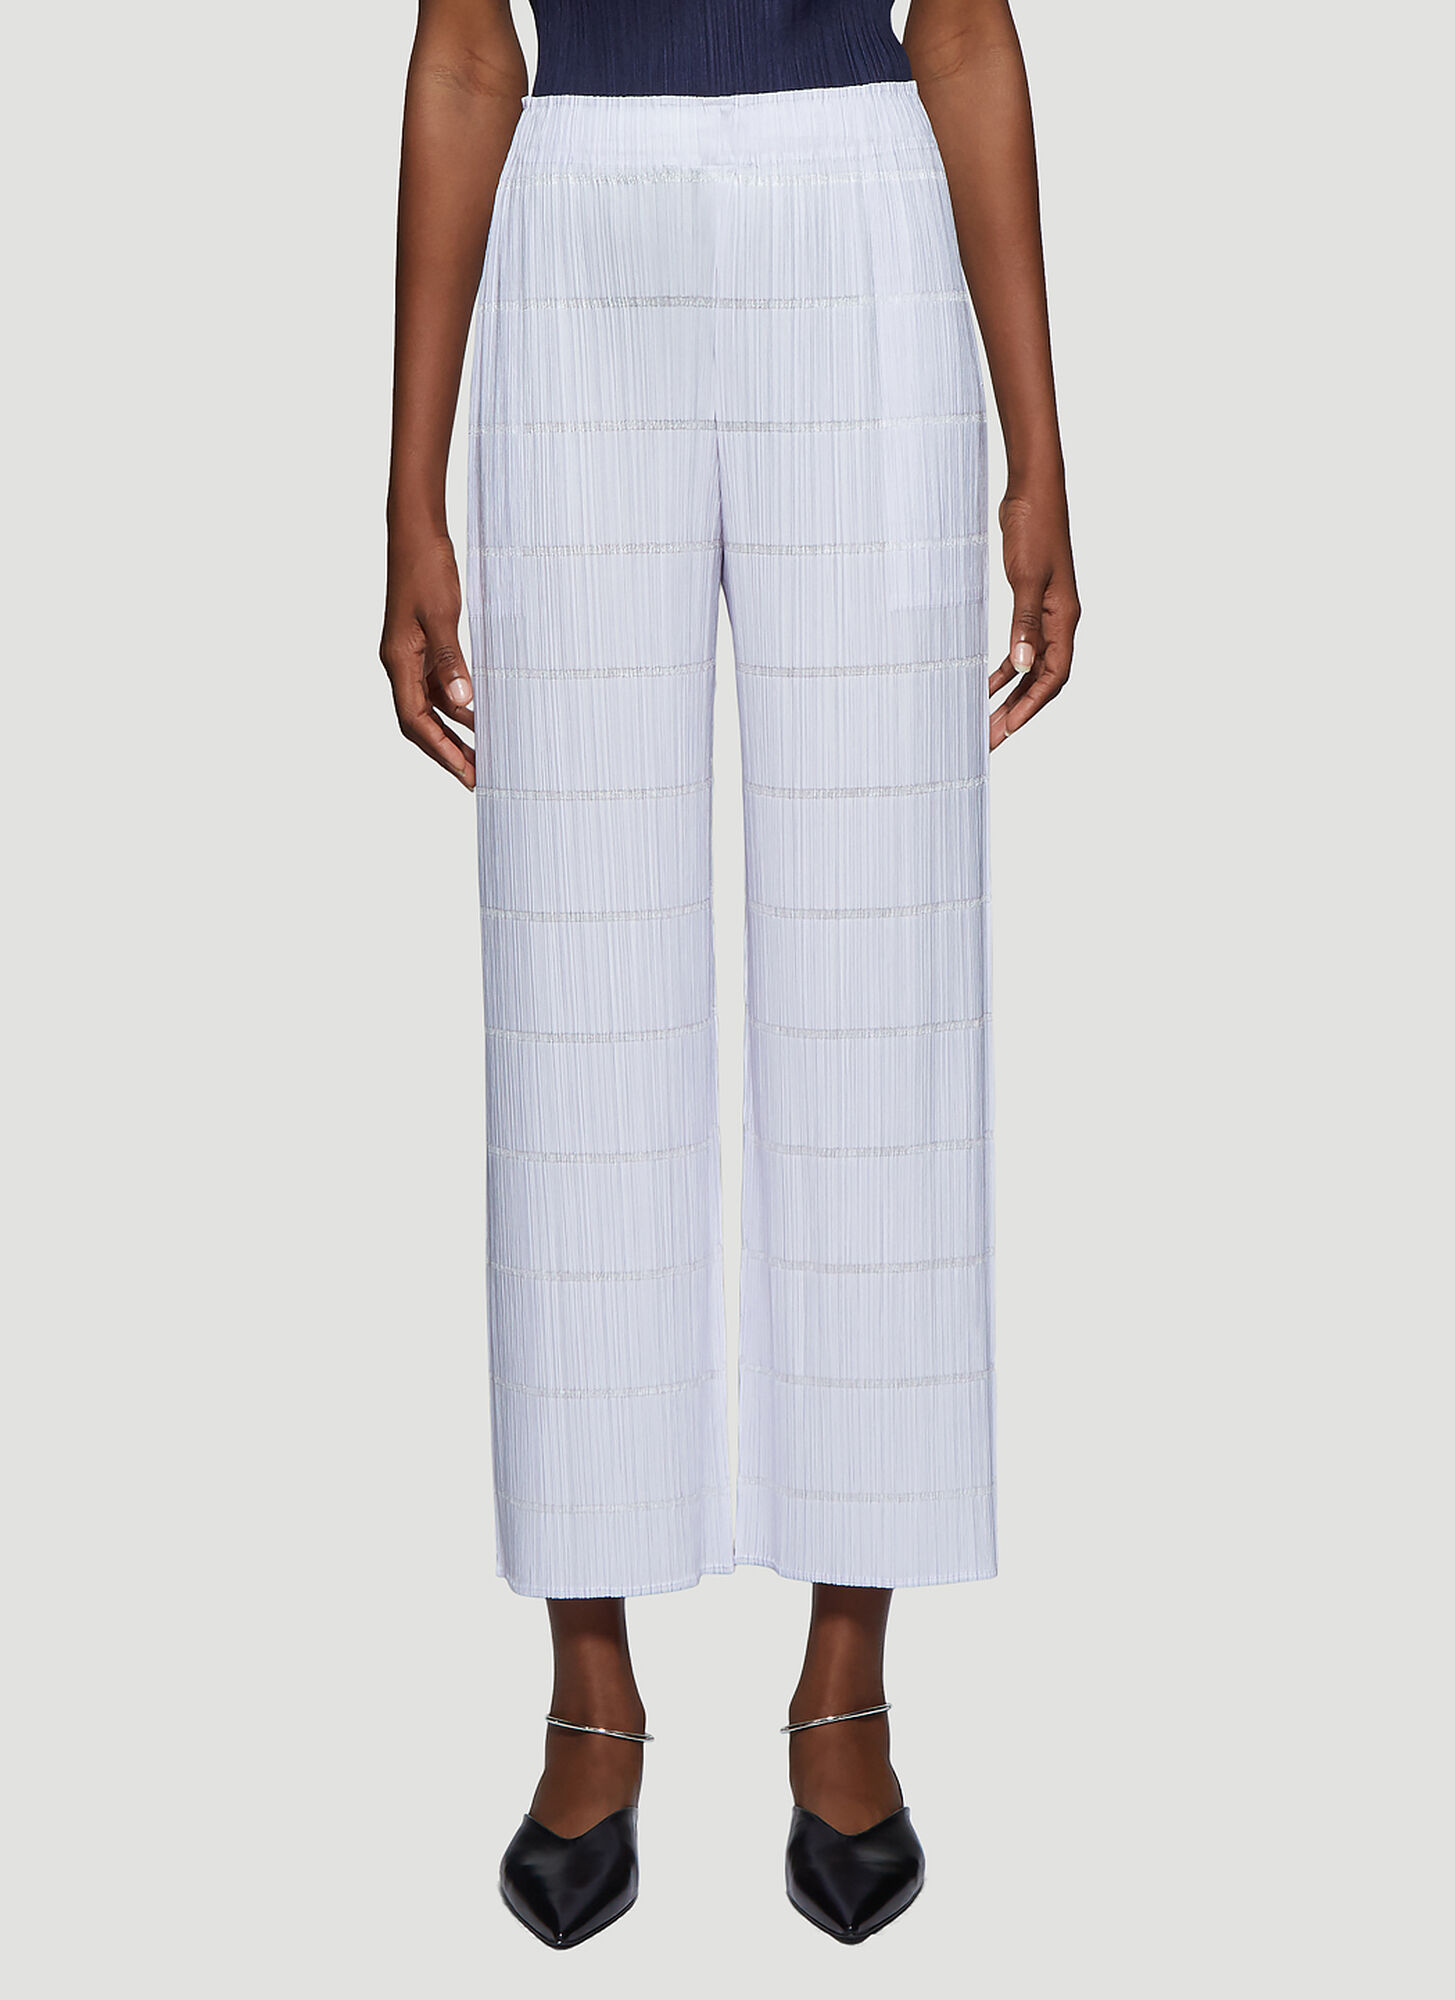 Photo of Pleats Please Issey Miyake Pleated Pants in Purple - Pleats Please Issey Miyake Pants